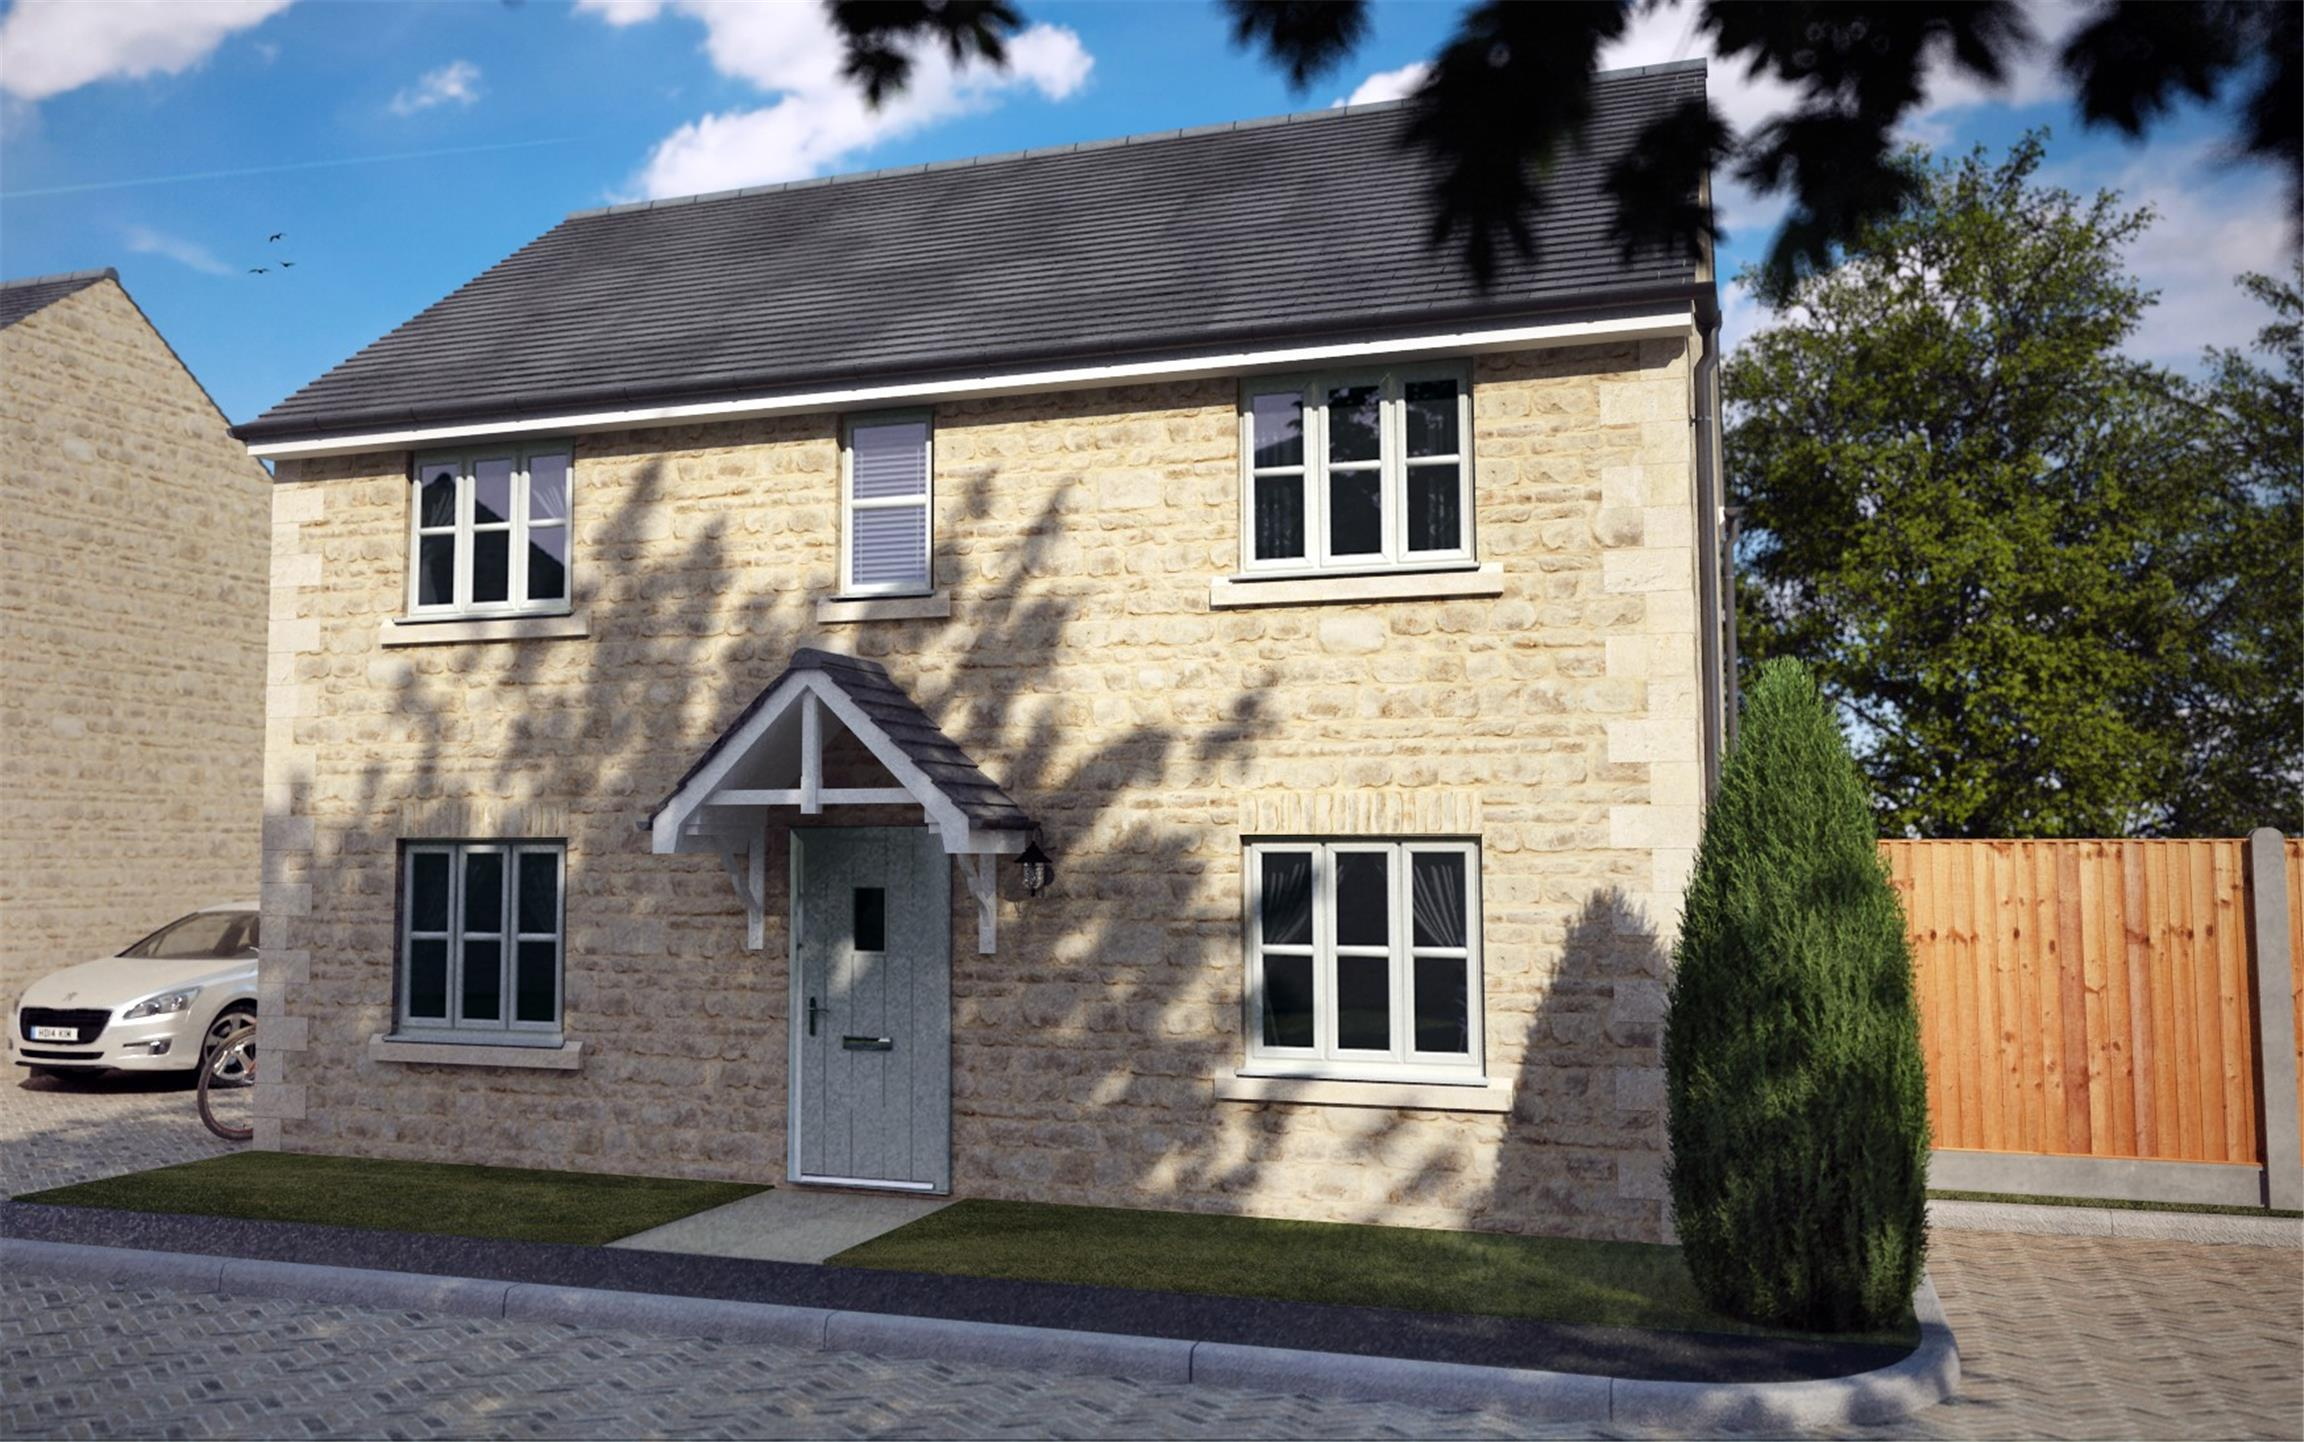 Plot 32, Hares Chase, Cricklade, Swindon SN6